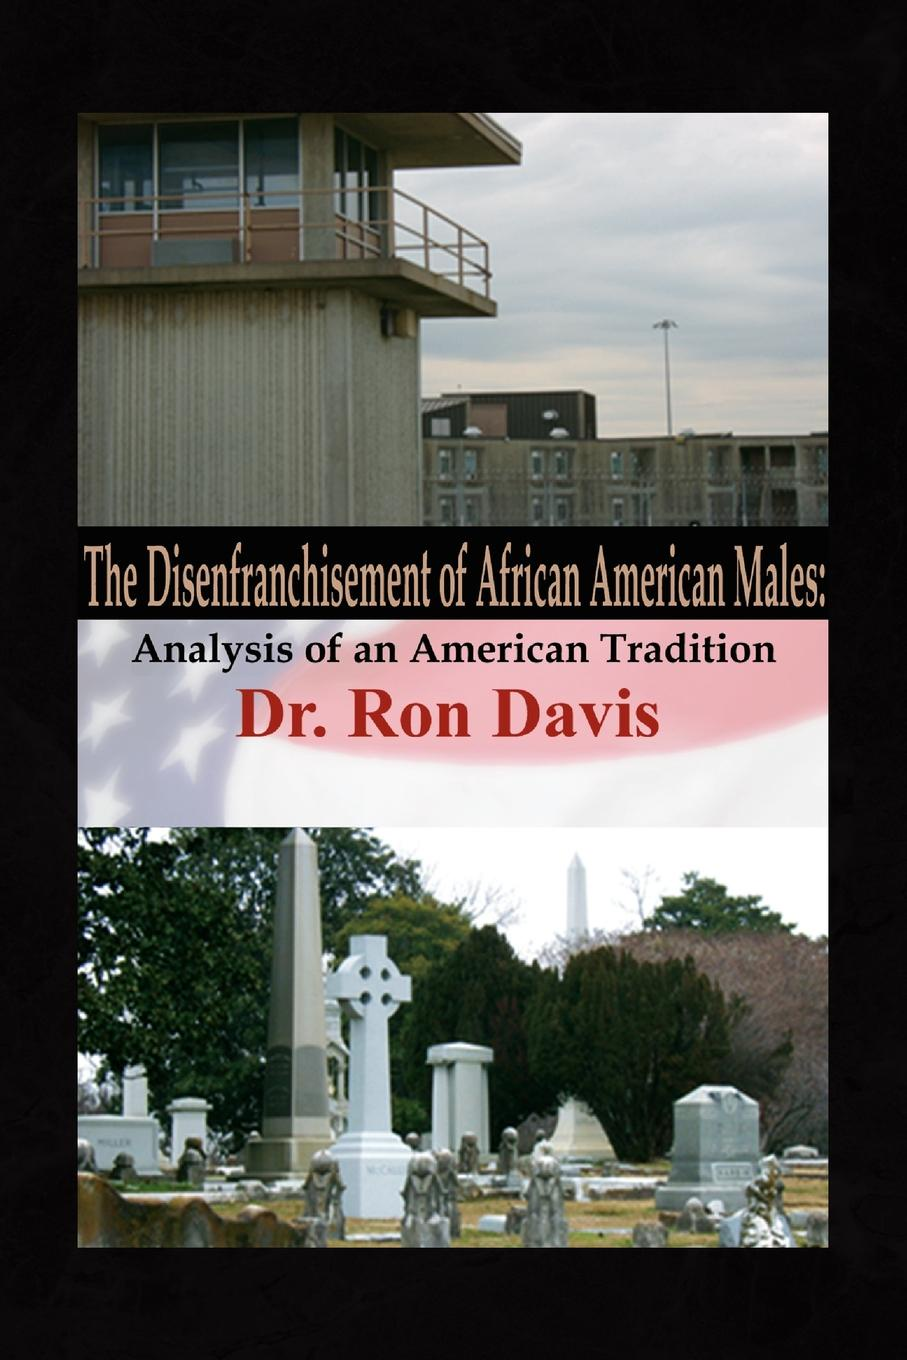 Dr. Ron Davis The Disenfranchisement of African American Males waksman dr ron bifurcation stenting